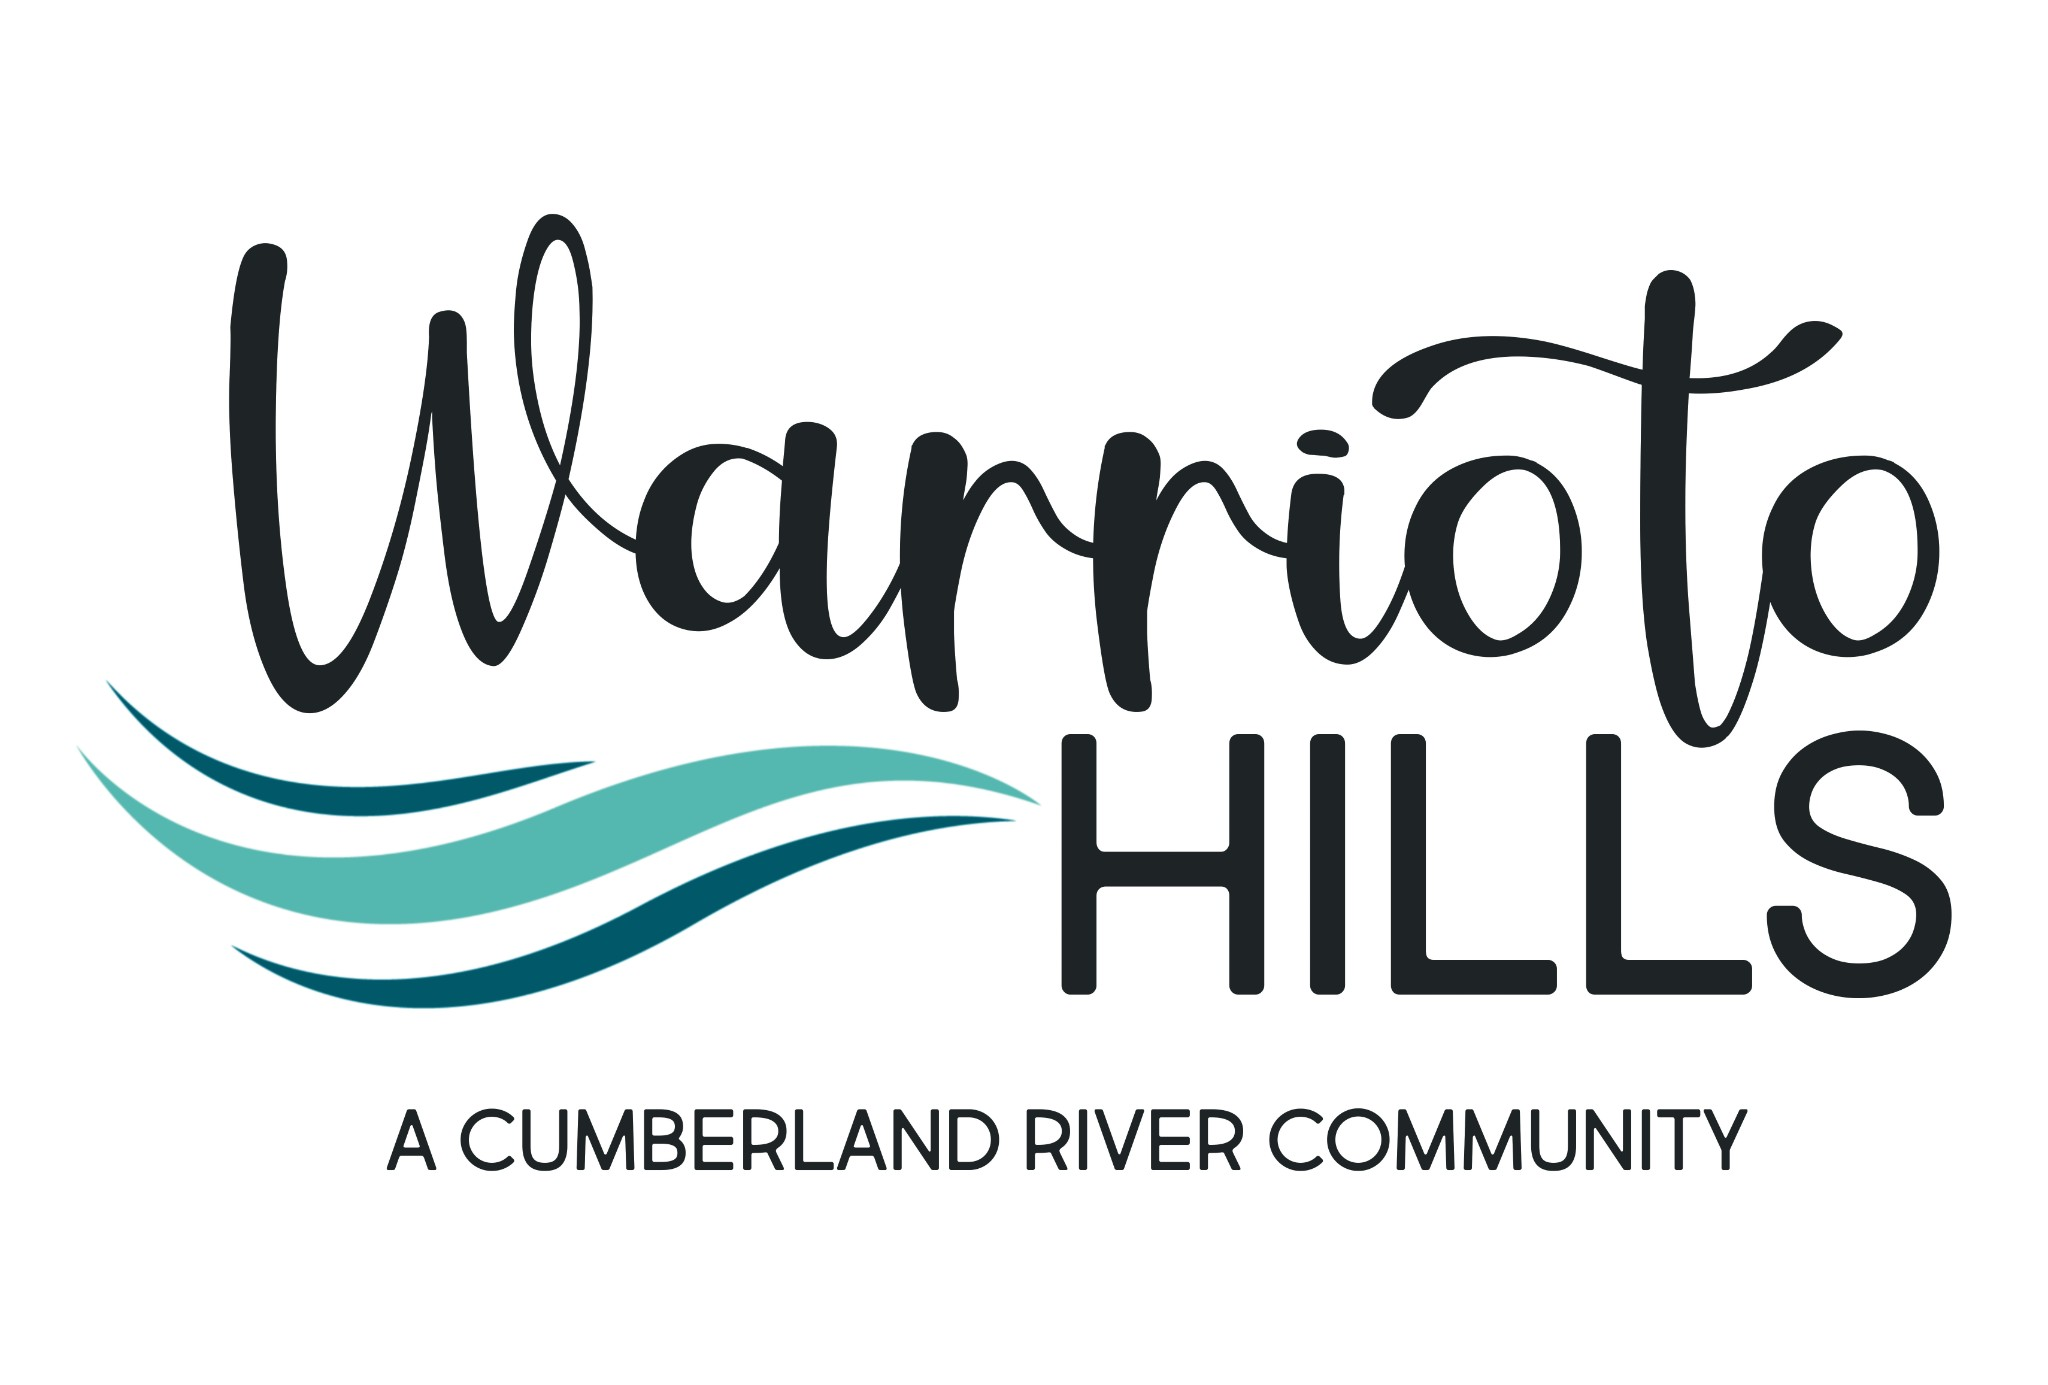 "Welcome to the NEW Warrioto Hills Subdivision: A Cumberland River Community - Check Out This New Construction Home - Exclusive ""The Glory"" Floor Plan - PRESOLD HOMES AVAILABLE: Contact Agent for Floor Plans, Available Lots & Pricing - Hurry These Homes Will Sell FAST!"